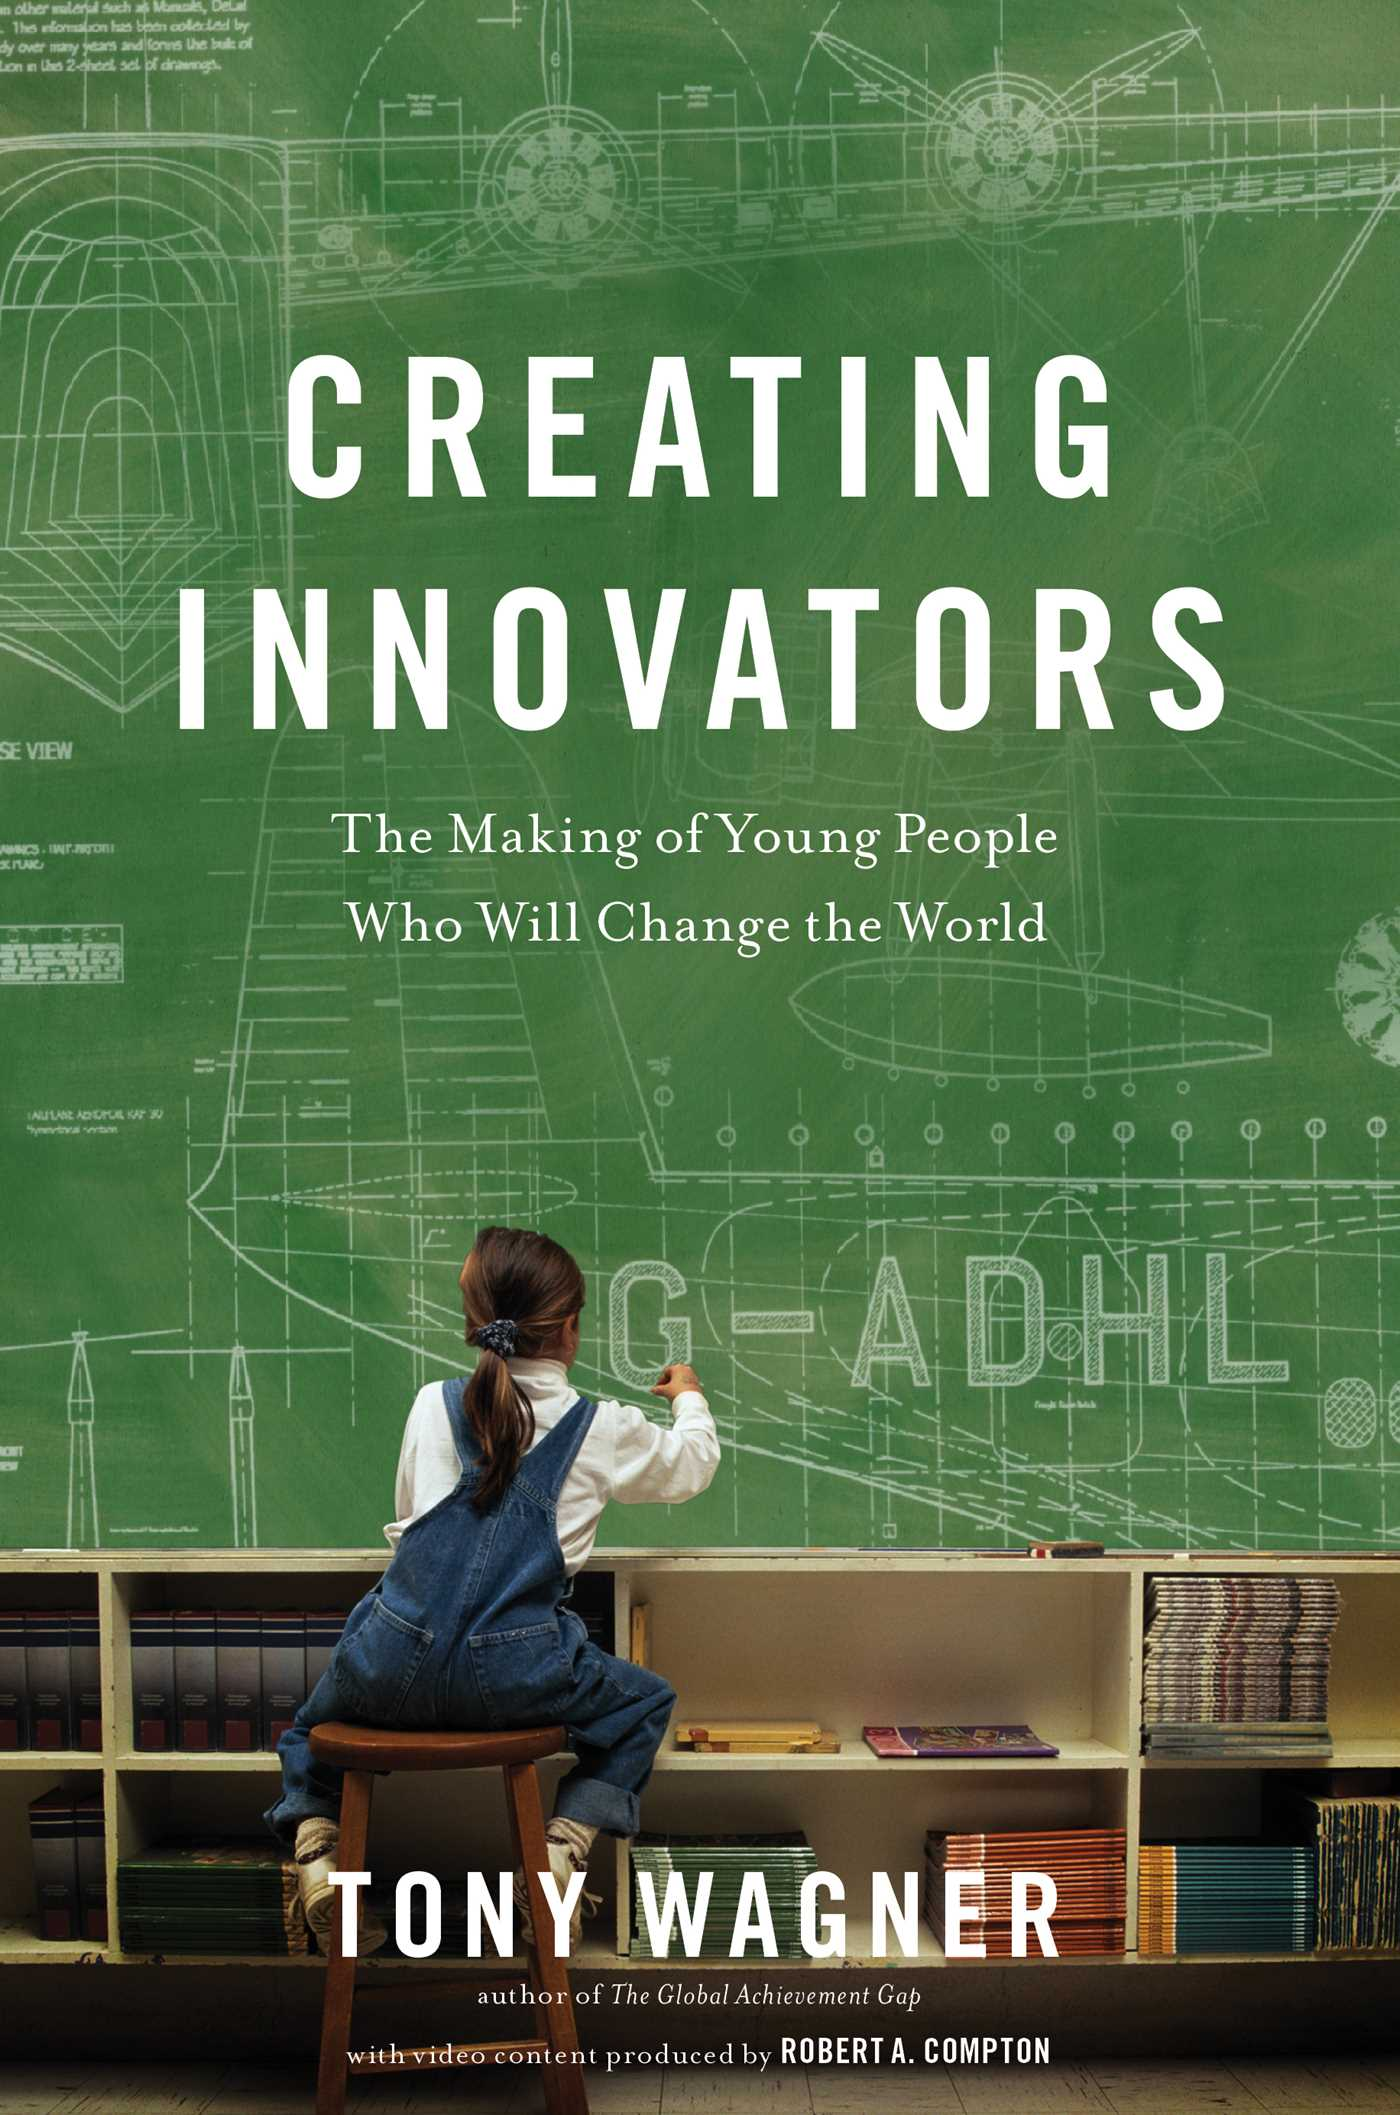 Creating-innovators-enhanced-ebook-9781451688542_hr